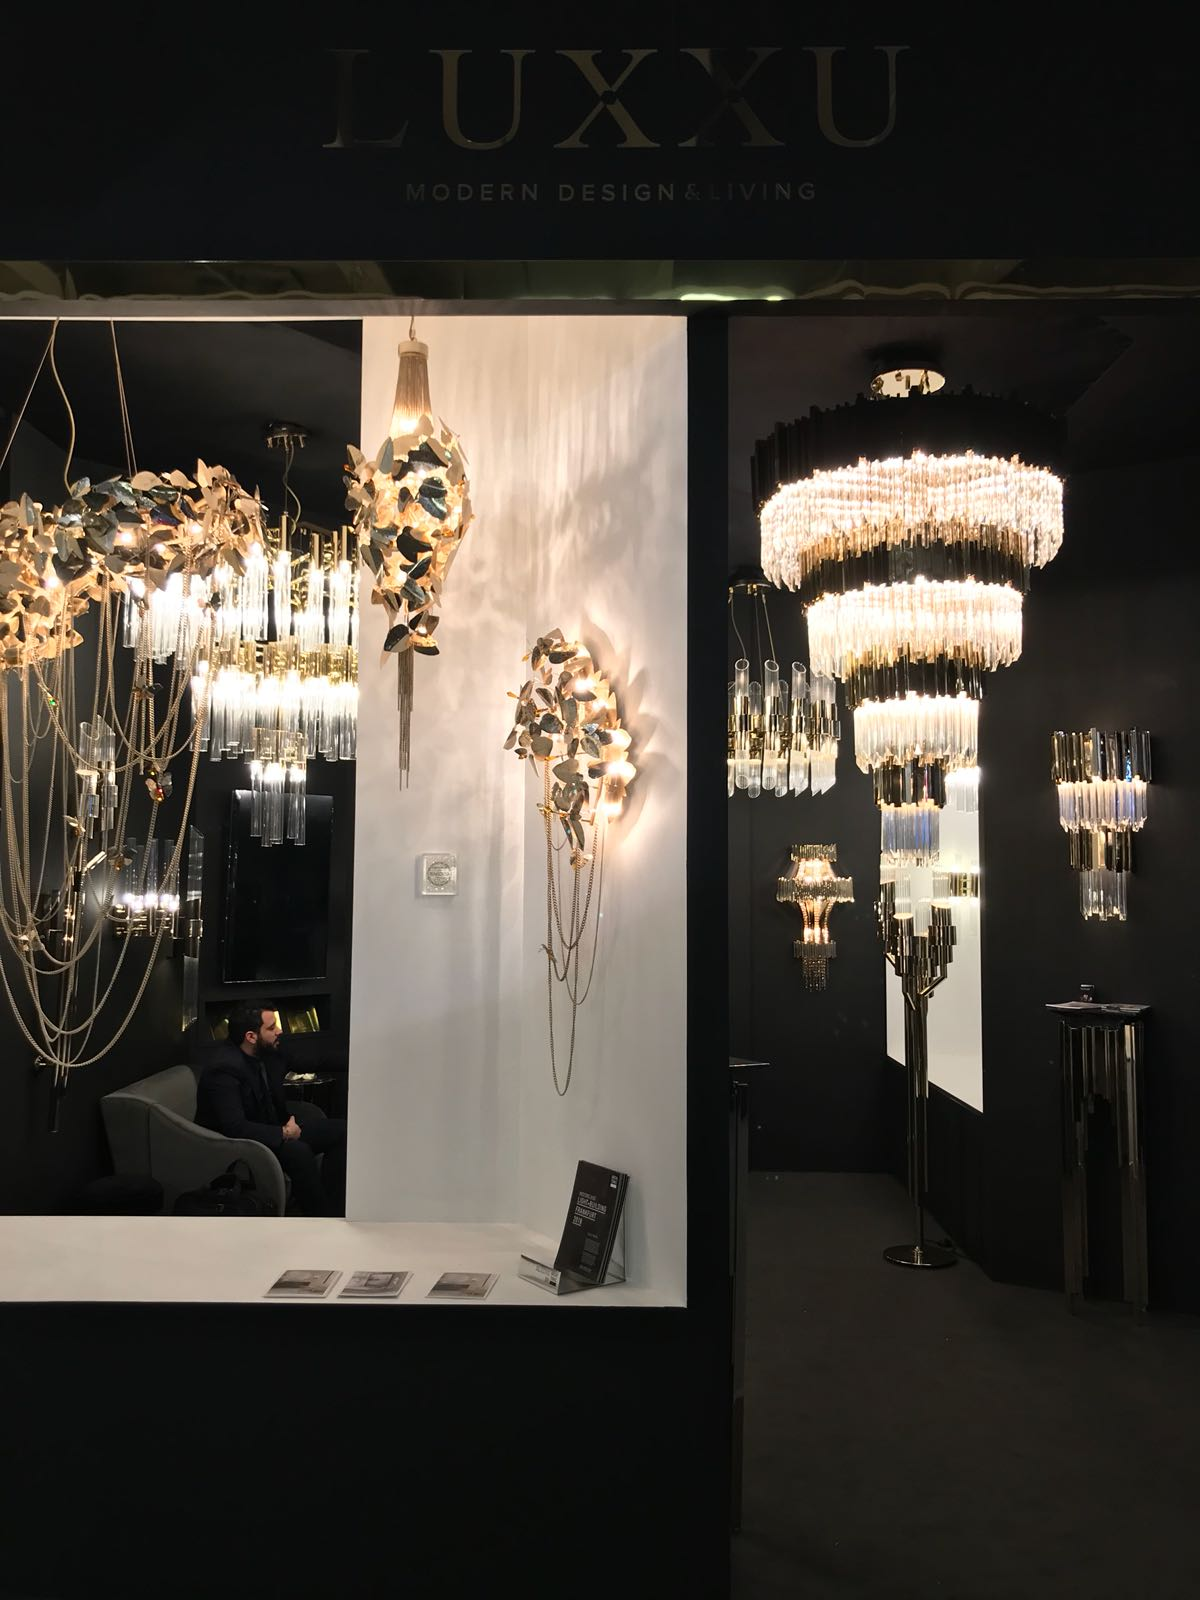 LUXXU's Highlights From Light + Building 2018 luxury lighting Luxury Lighting Ideas for your Dining Room Design LUXXUs Highlights From Light Building 2018 01 luxury lighting Luxury Lighting Ideas for your Dining Room Design LUXXUs Highlights From Light Building 2018 01